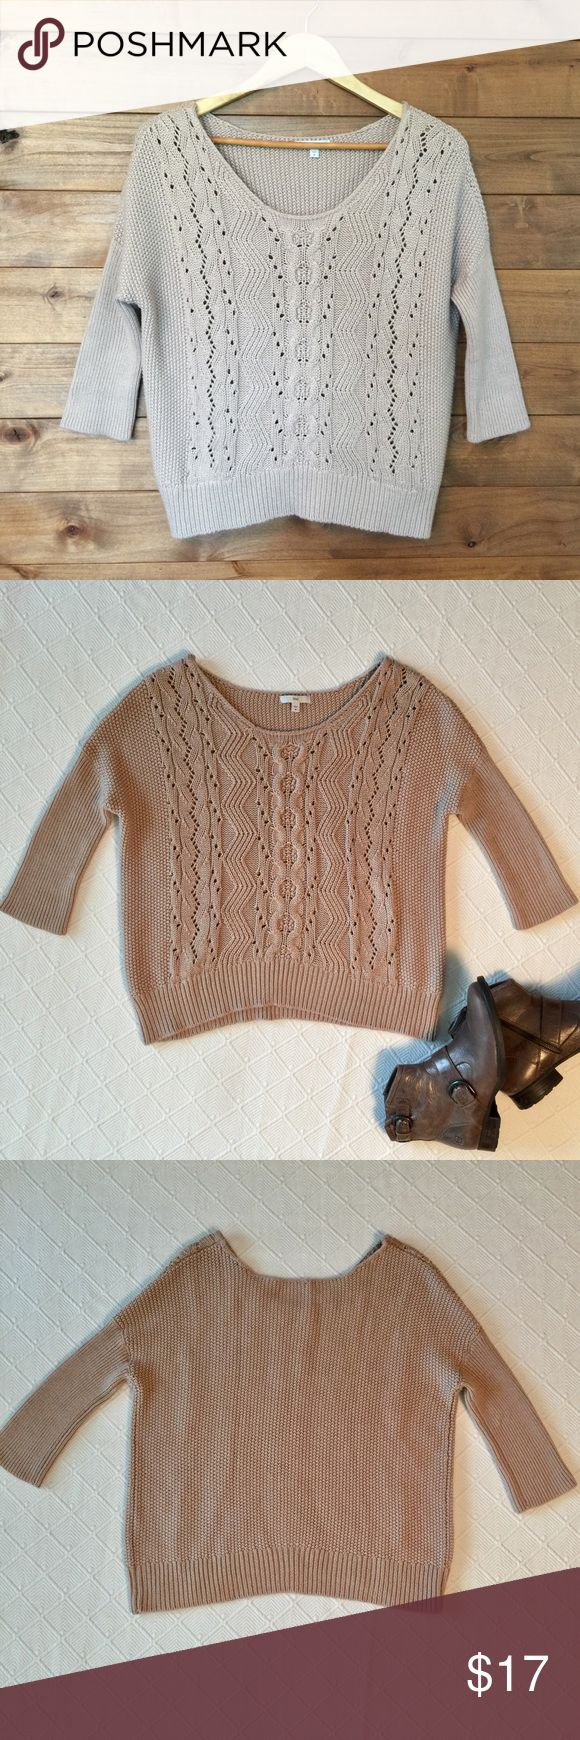 "GAP Dolman Cable Knit Sweater in Neutral Tan Gap Soft cable knit 3/4 fitted sleeves. Scoop neckline. Ribbed trim throughout.  ▪️Color: Toupe/ Tan ▪️Fabric: 45% Acrylic 45% Nylons 10% Wool ▪️Size: Med. ▪️Bust: 22"" ▪️Length: 20"" shortest 31"" longest ▪️Excellent. No pilling or flaws. GAP Sweaters"